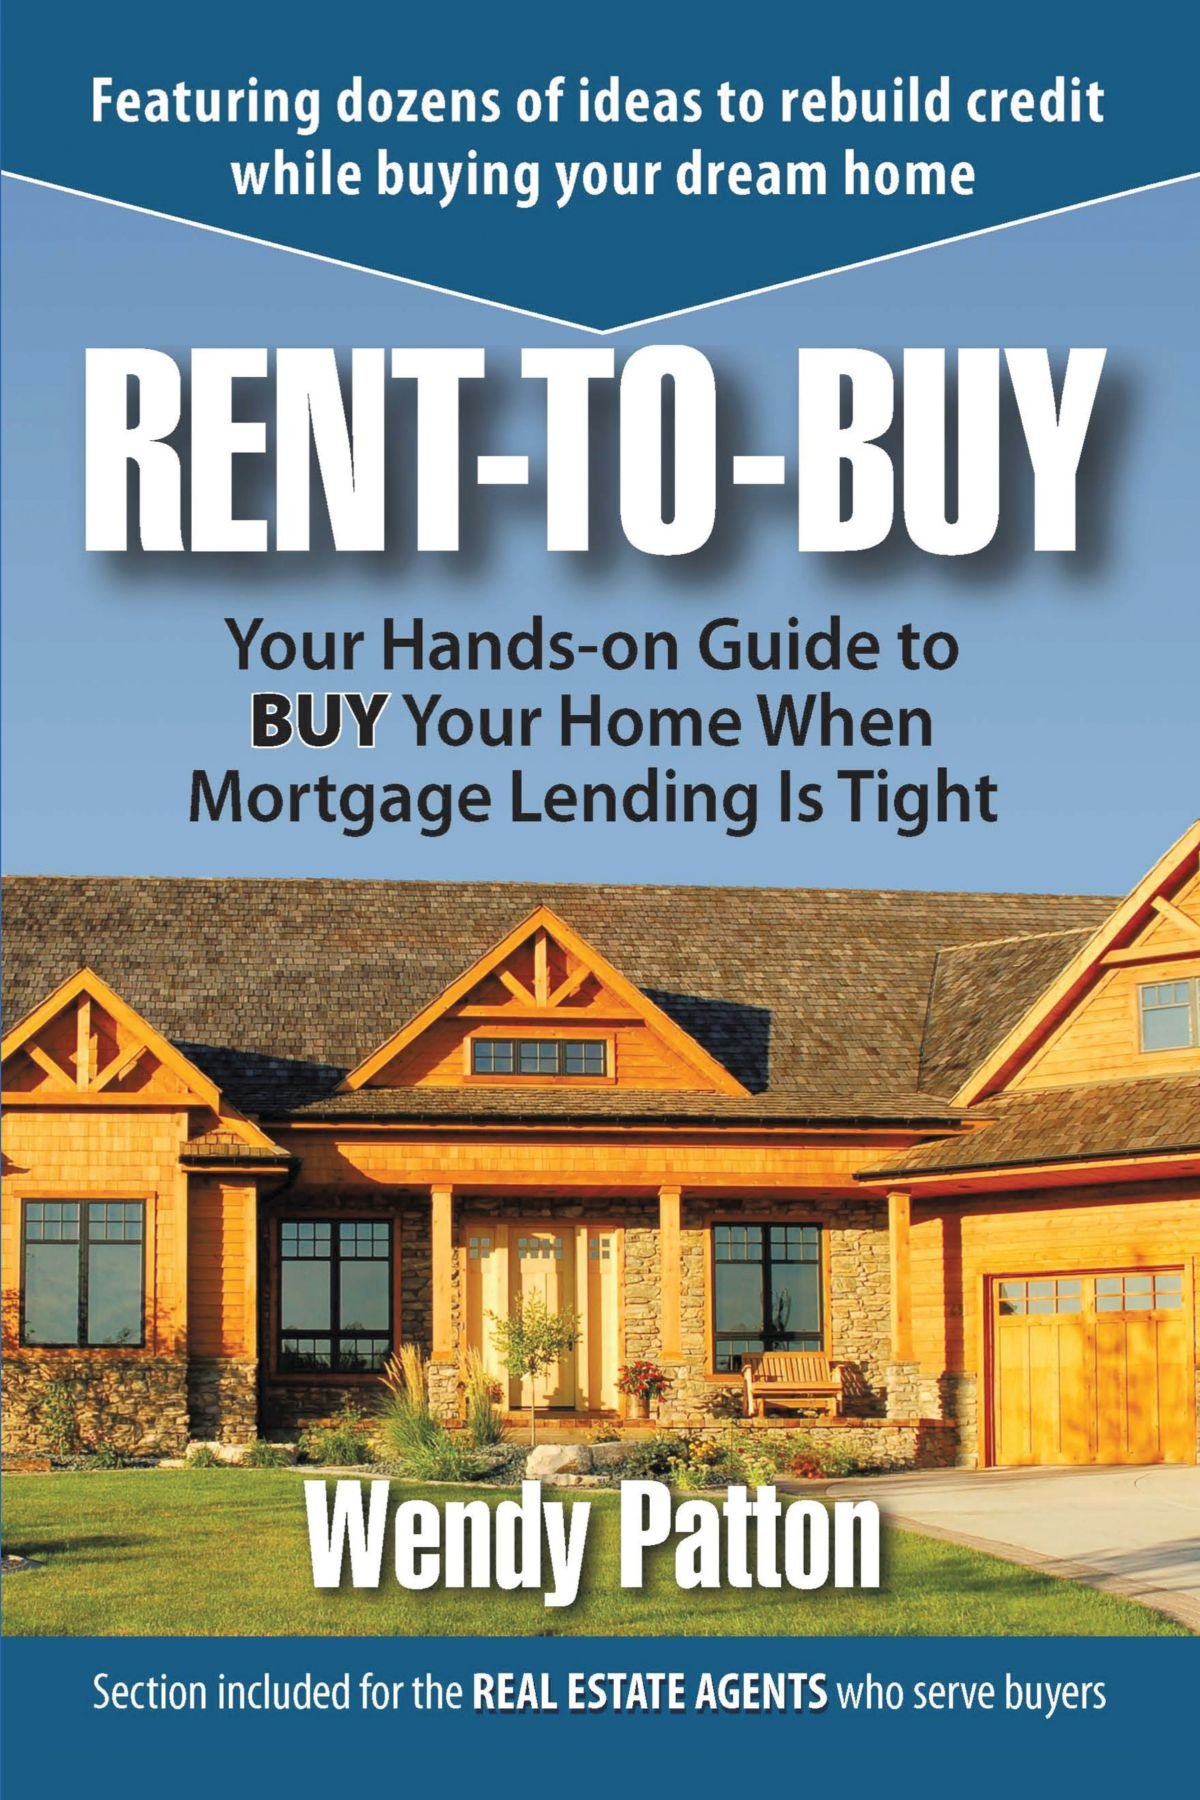 Rent-to-Buy: Your Hands-On Guide to BUY Your Home When Mortgage Lending is Tight